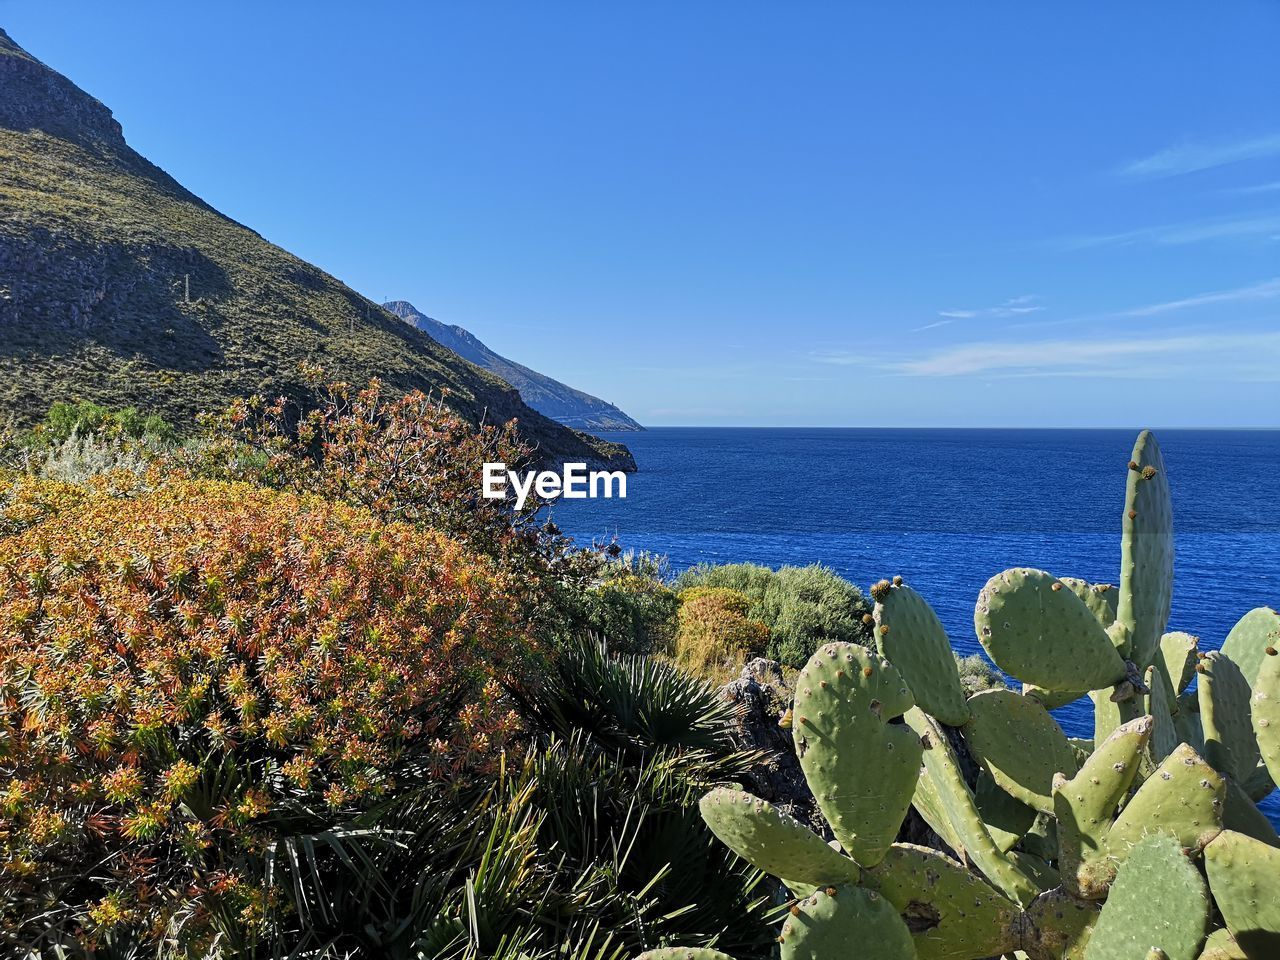 sea, water, sky, plant, beauty in nature, scenics - nature, tranquil scene, tranquility, nature, growth, blue, horizon over water, no people, cactus, mountain, succulent plant, day, land, horizon